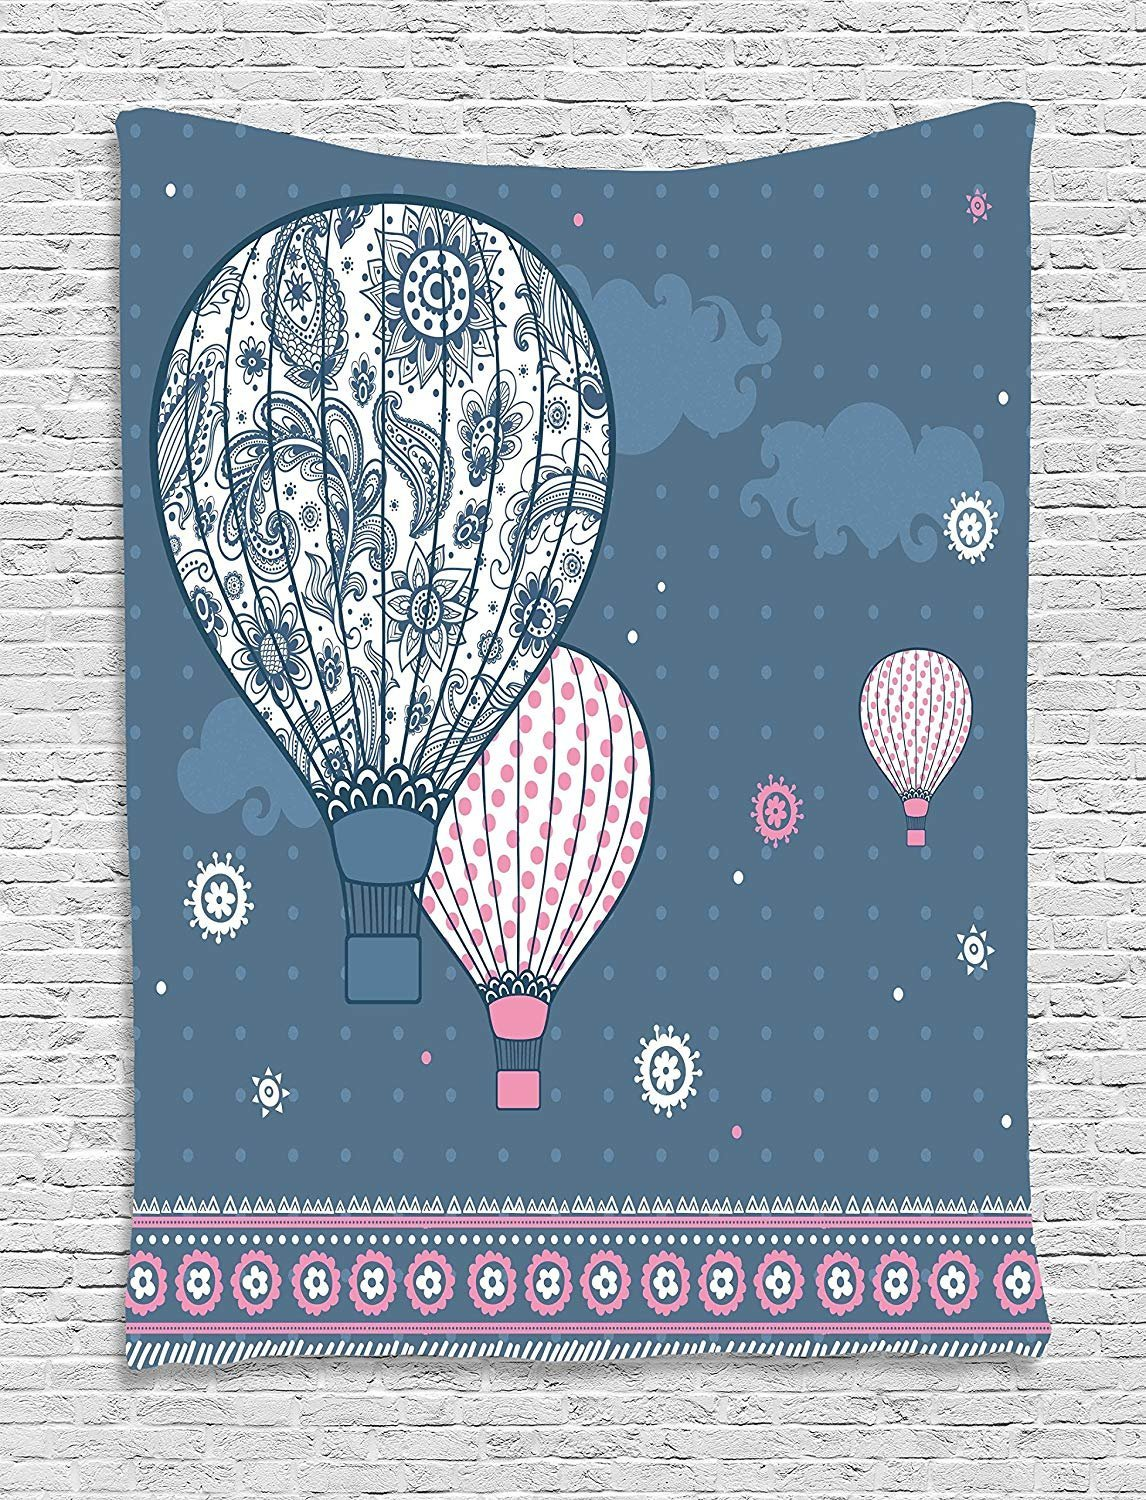 XHFITCLtd Retro Tapestry, Air Balloons on Polka Dots and Asian Ethnic Paisley Ornaments Art Print, Wall Hanging for Bedroom Living Room Dorm, 60 W x 80 L Inches, Slate Blue Light Pink